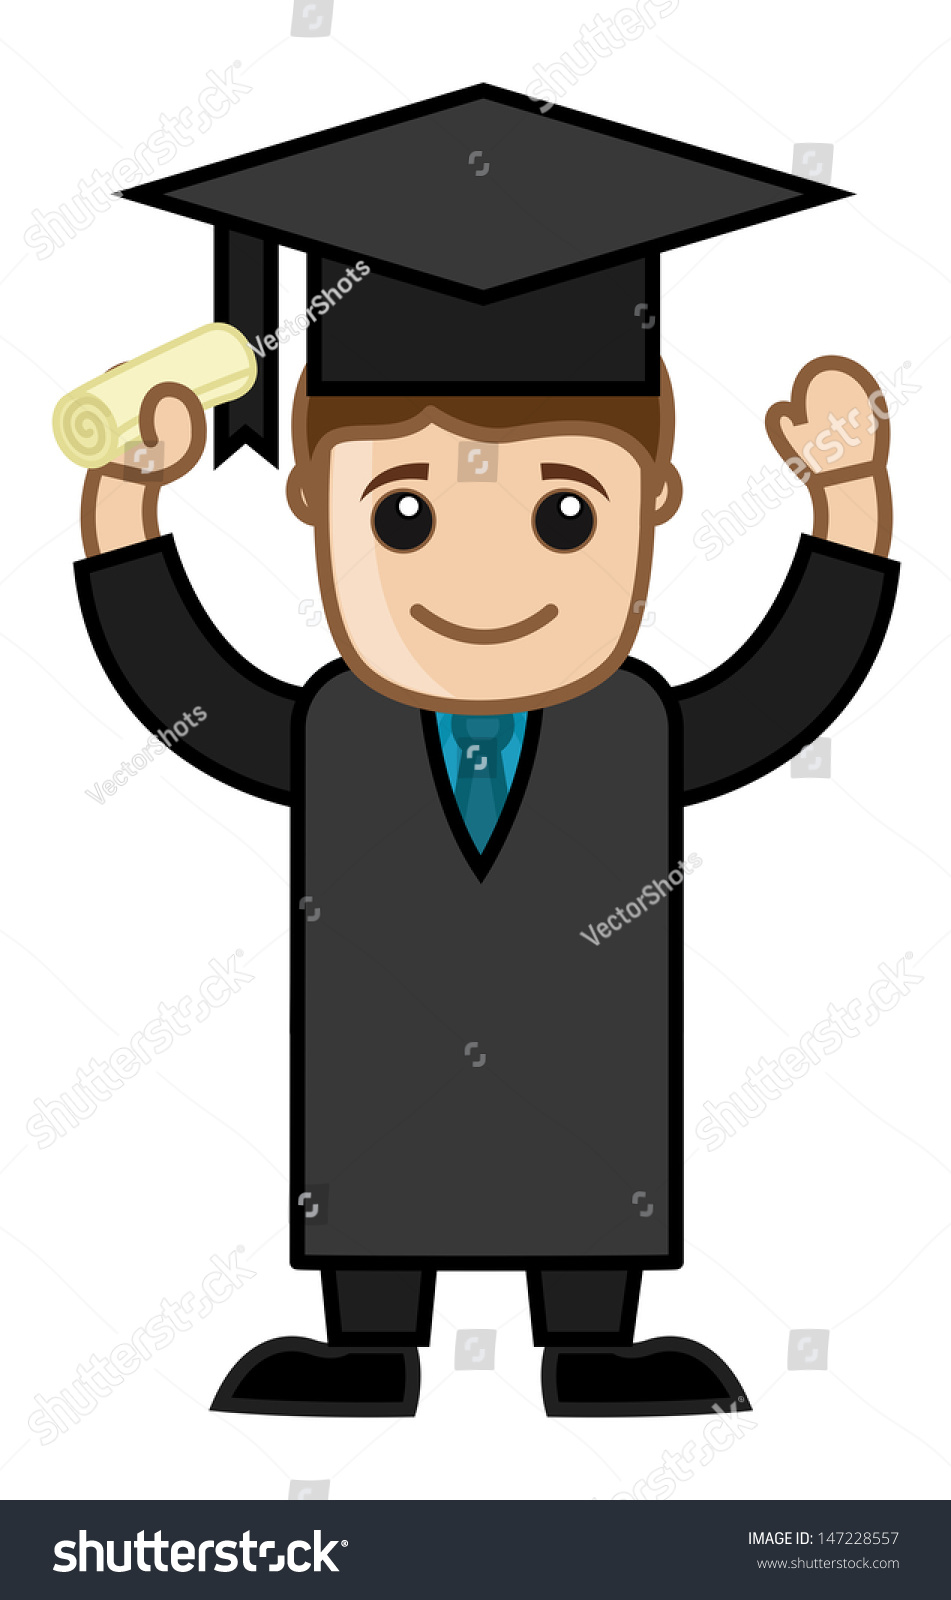 graduation success cartoon office vector illustration stock vector royalty free 147228557 https www shutterstock com image vector graduation success cartoon office vector illustration 147228557